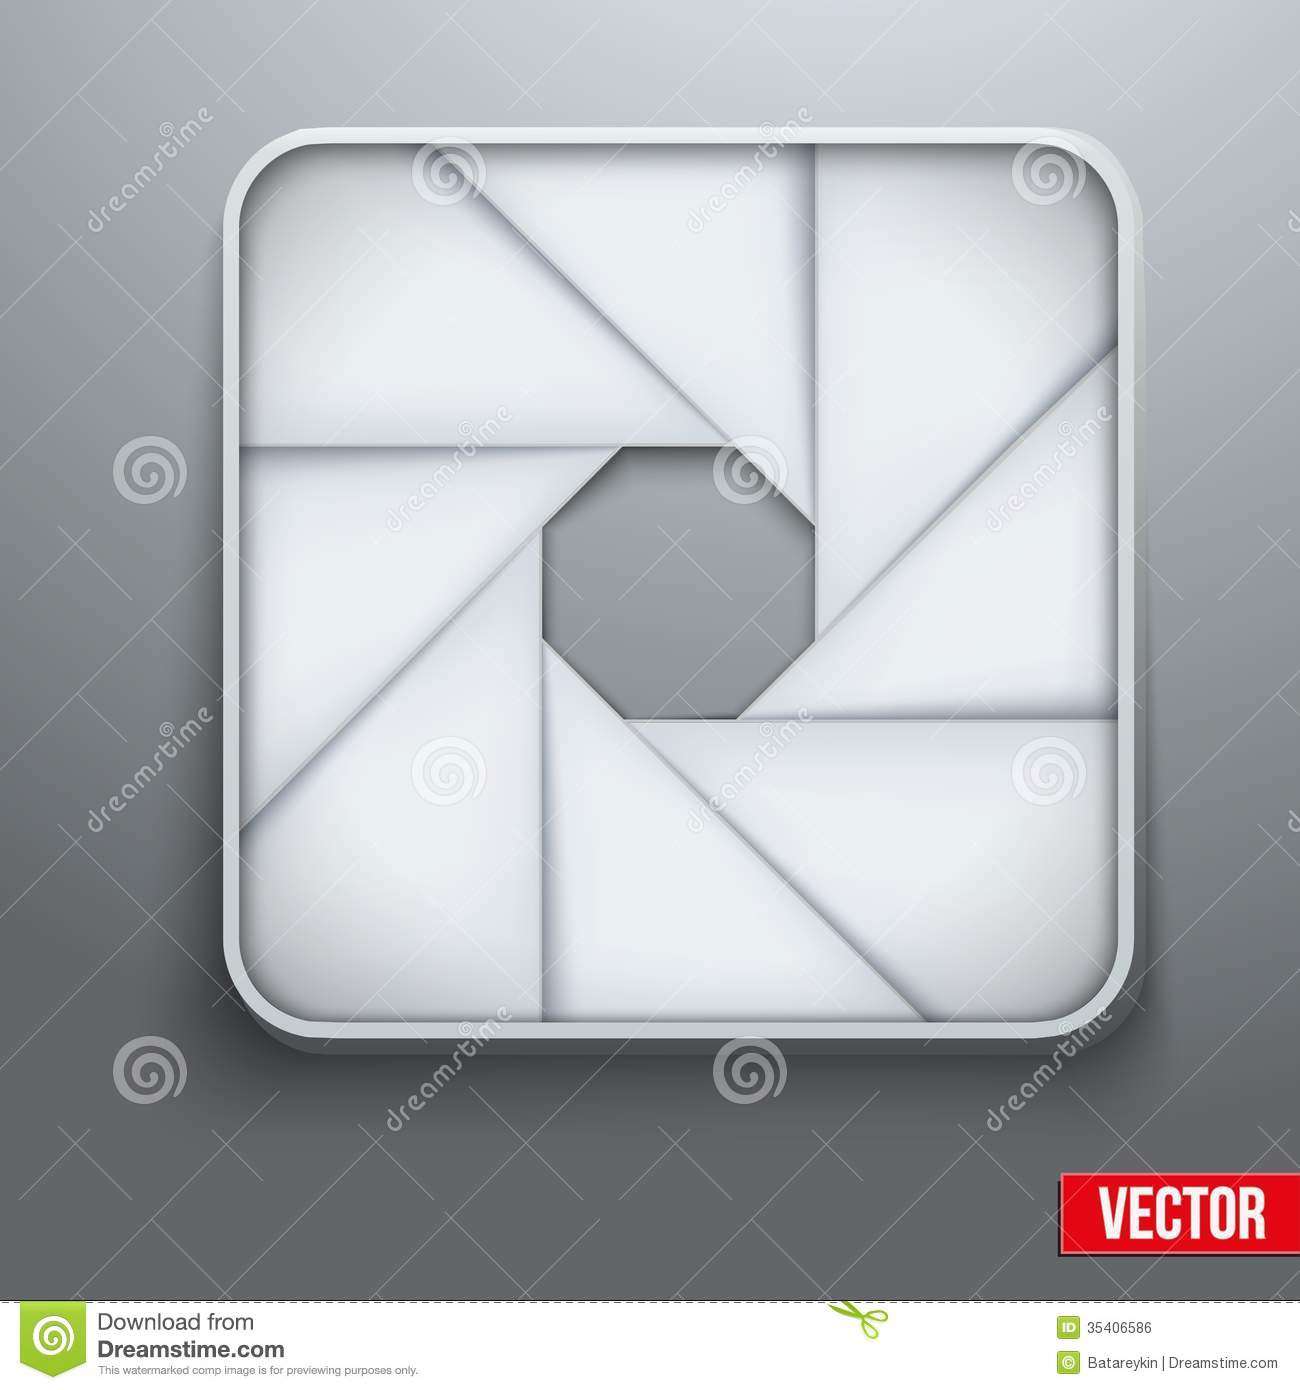 Camera aperture objective icon photography symbol